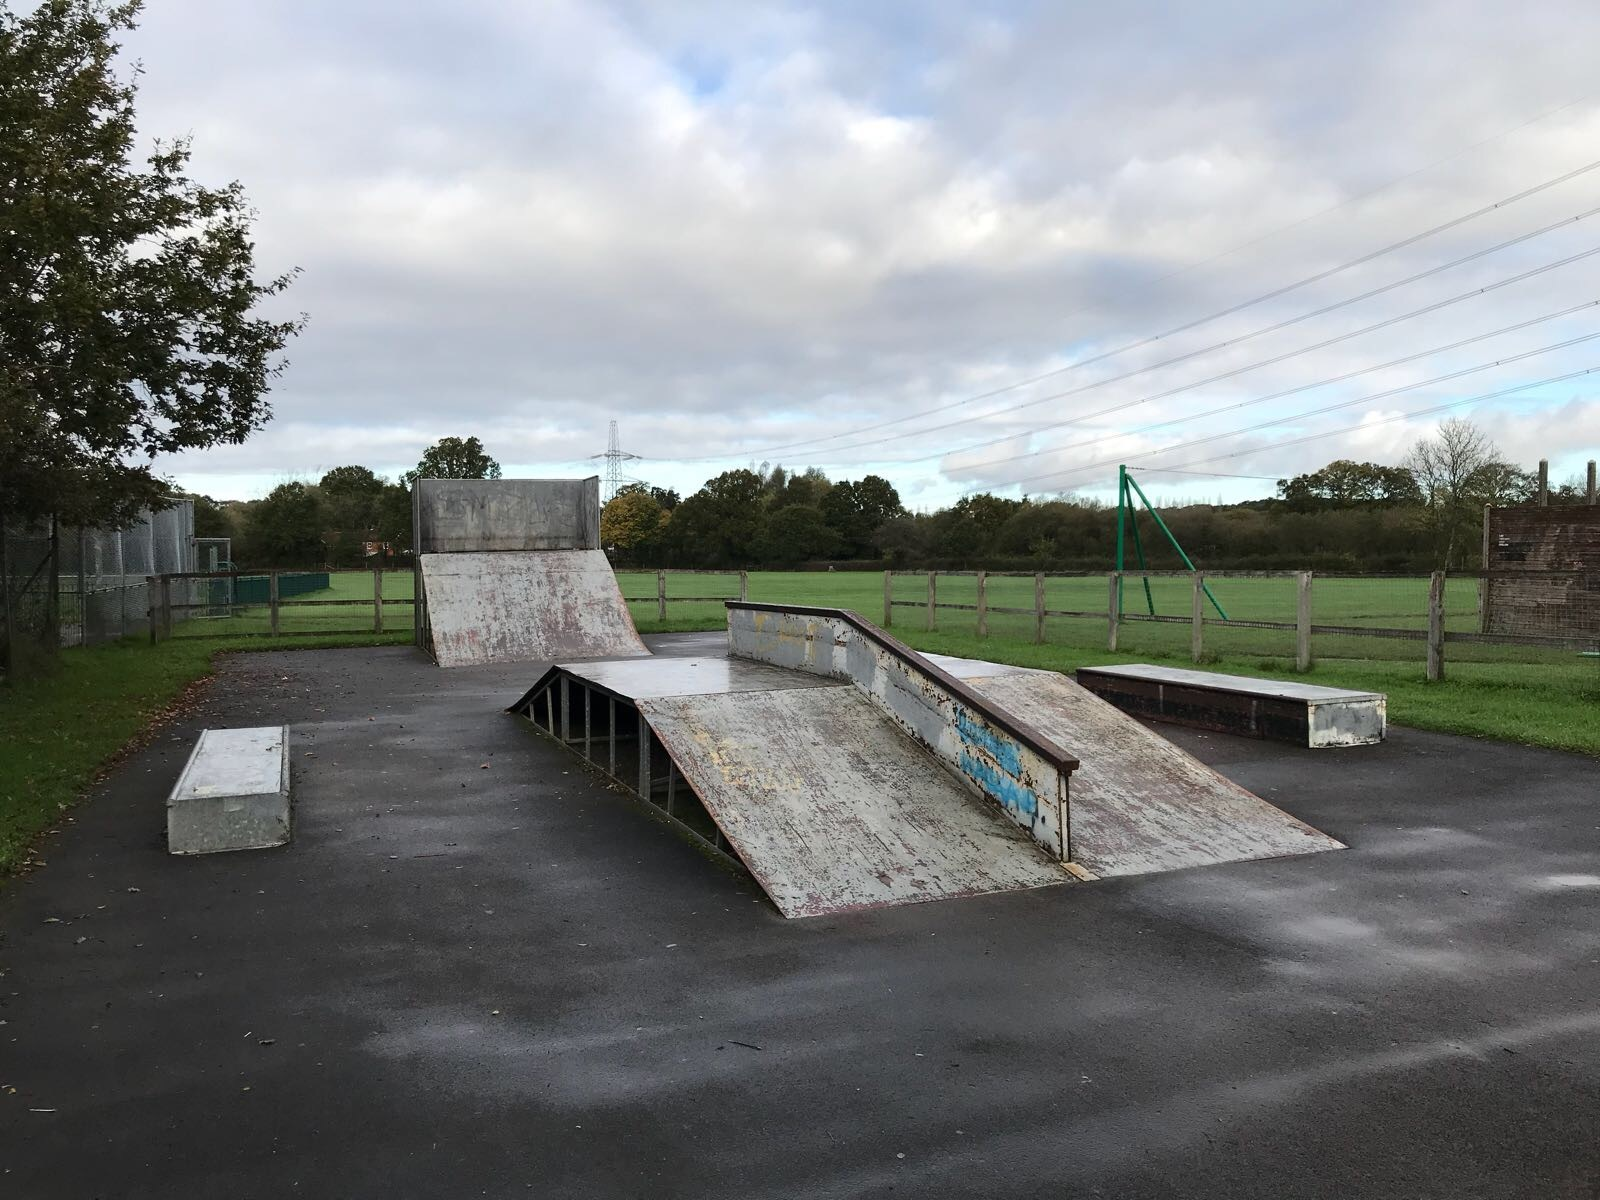 The current skate park at New Road